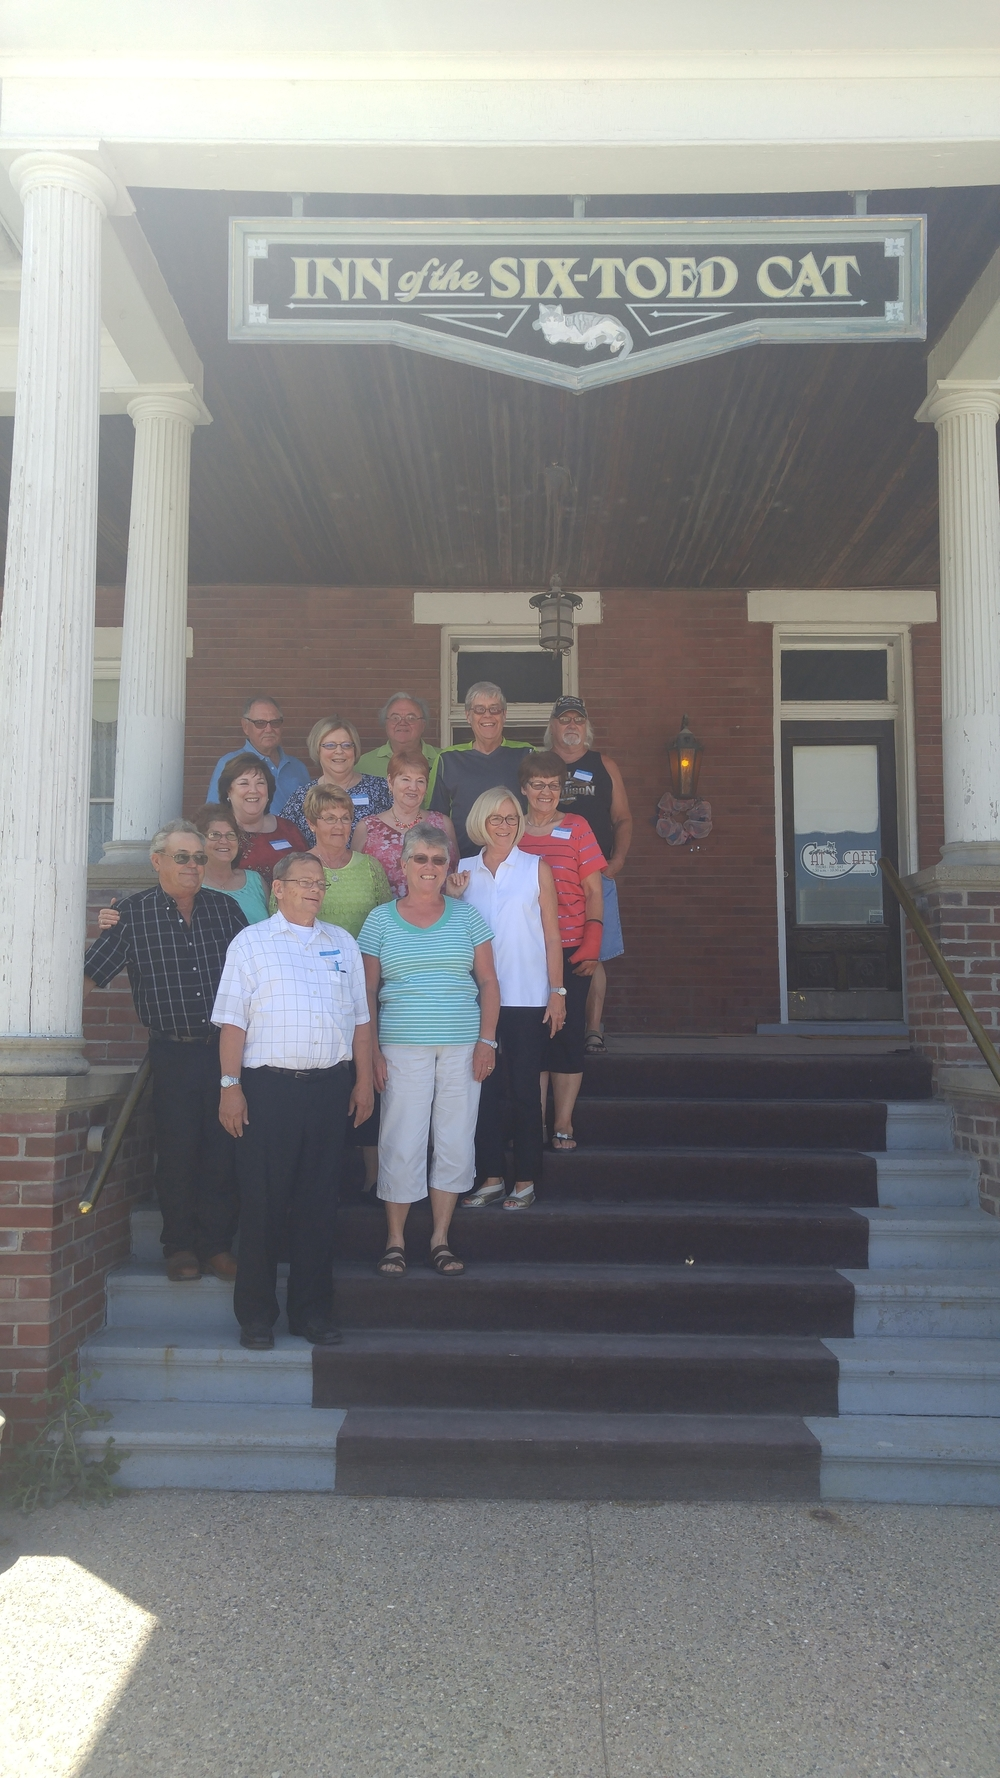 ACL Eagles class of 1966 at the Inn of the Six-Toed Cat